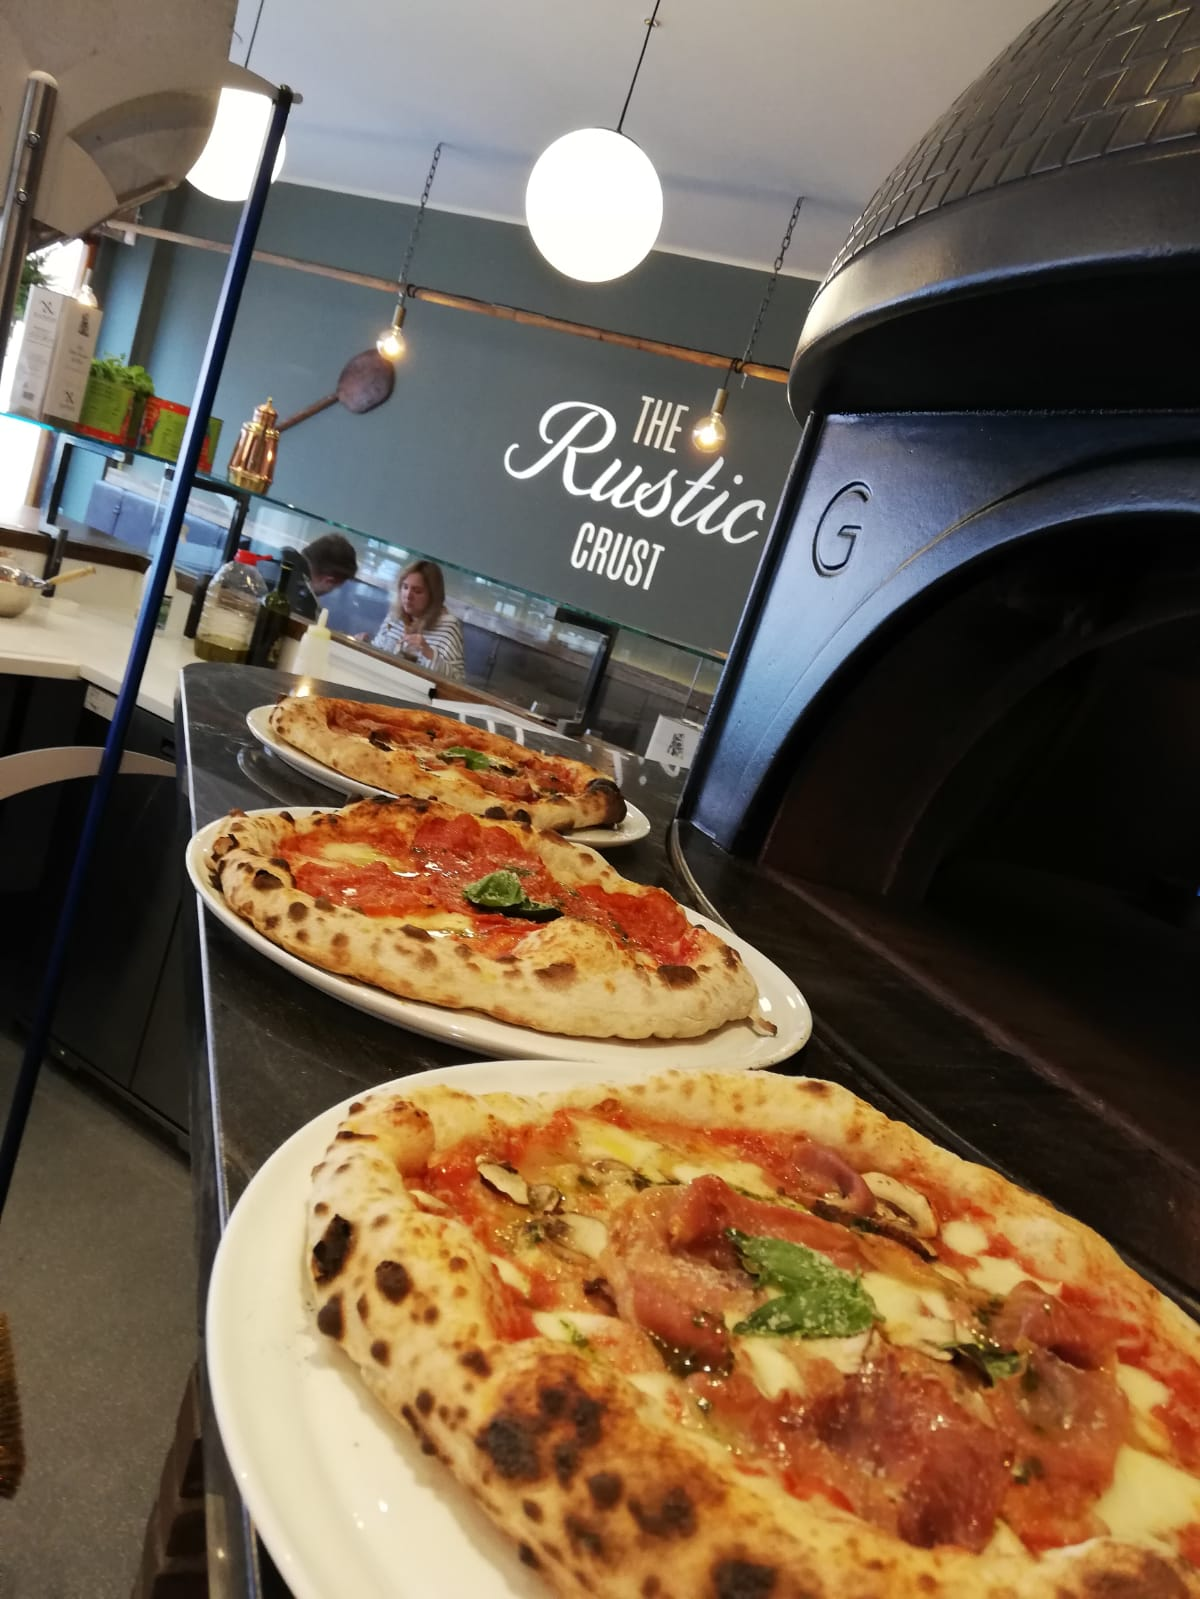 A taste of Naples @ the Rustic Crust in Farnsfield